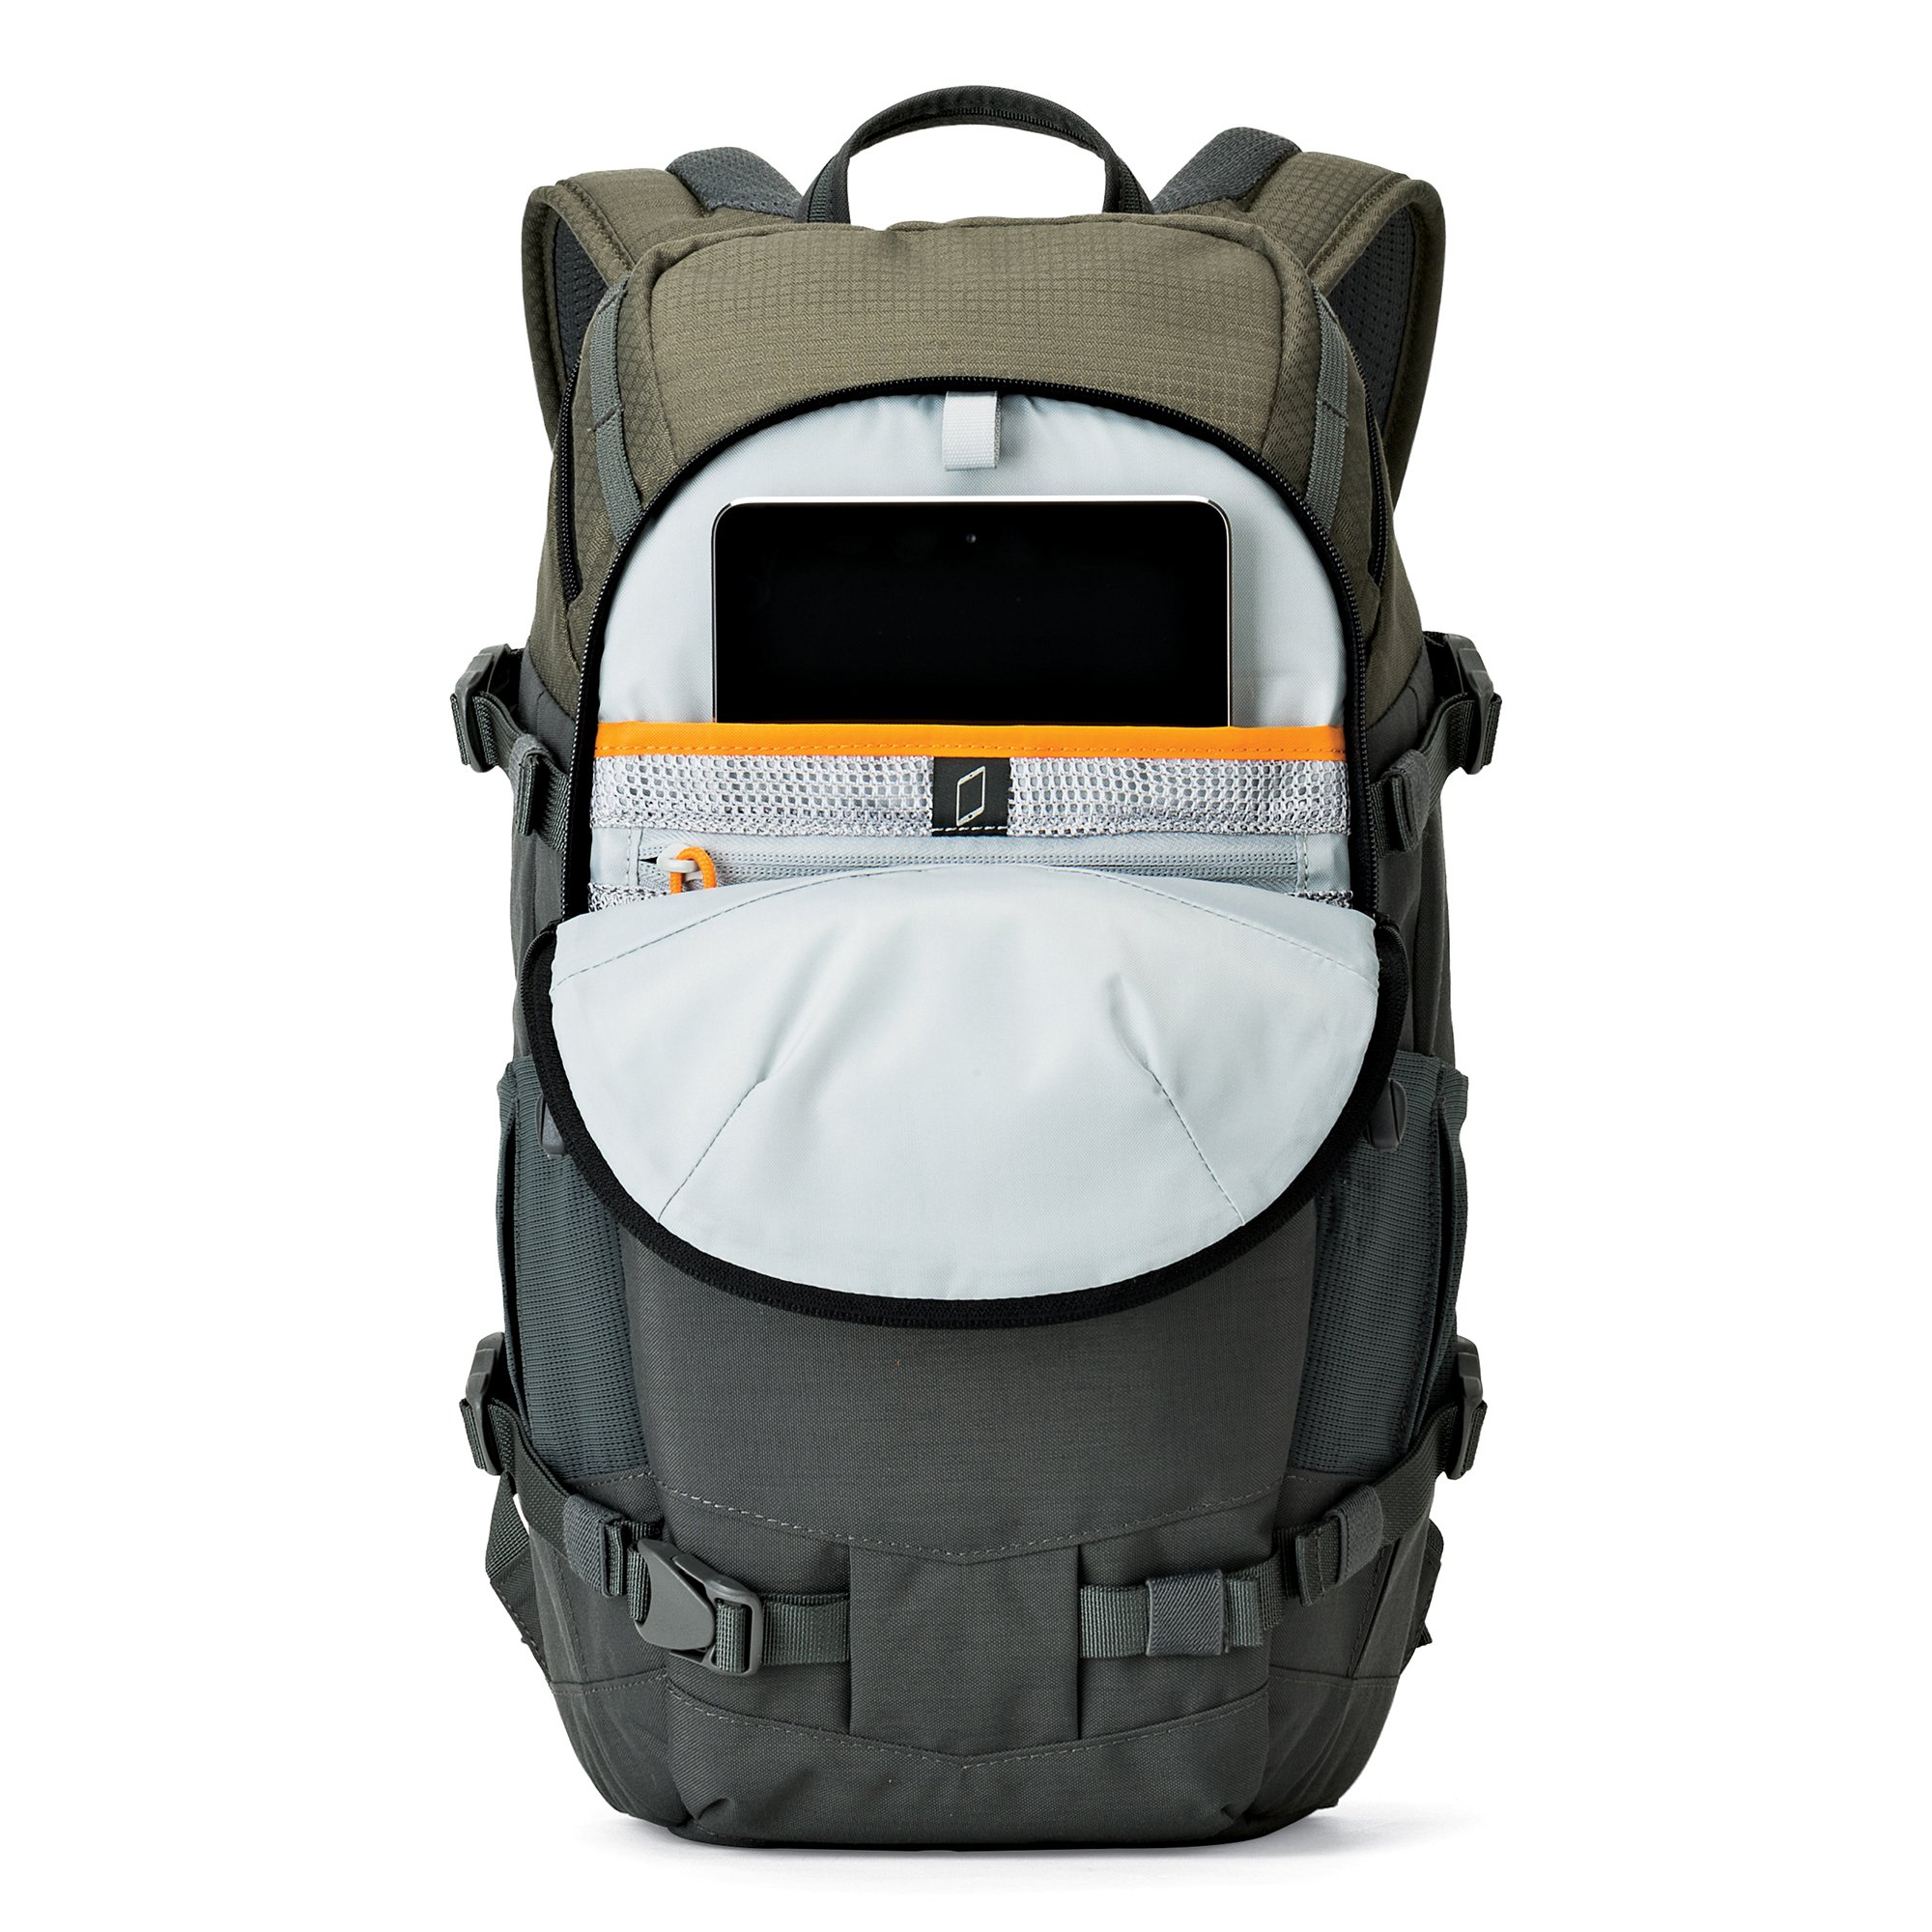 Lowepro Flipside Trek BP 250 AW - Outdoor Camera Backpack for Mirrorless or Compact DSLR w/ Rain Cover and Tablet Pocket. by Lowepro (Image #5)